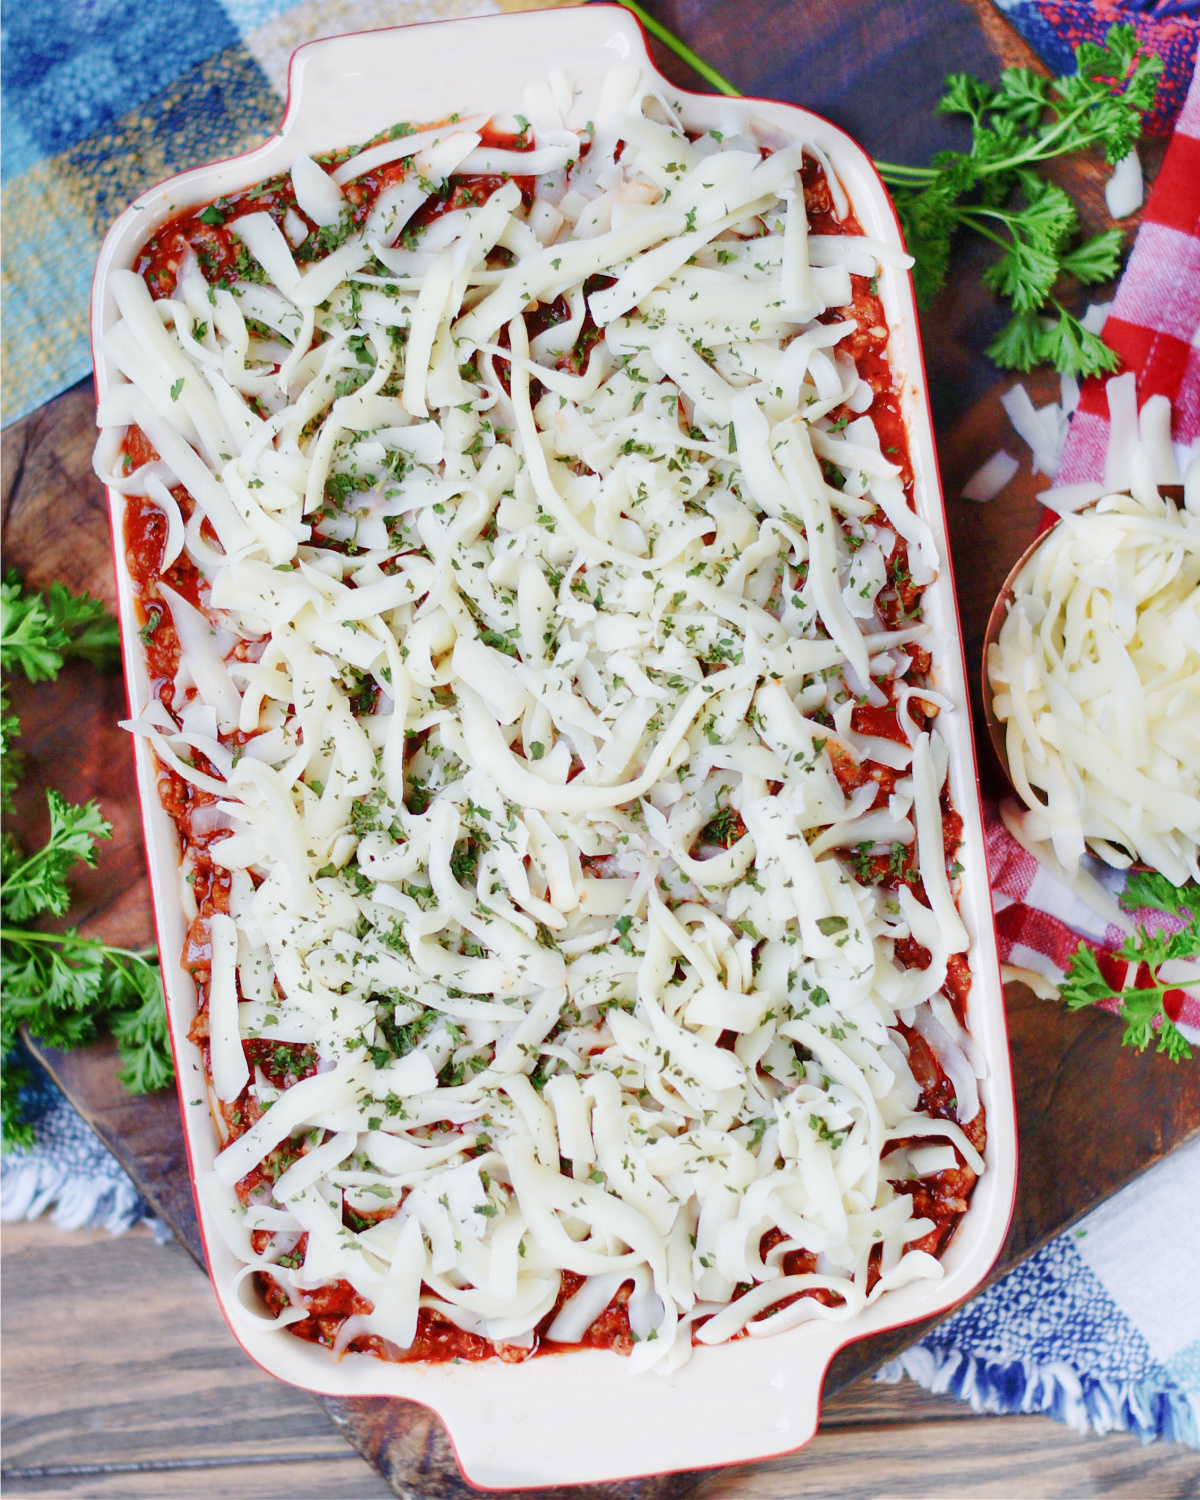 How to make Ultimate Bake Spaghetti Casserole with a creamy cheese center